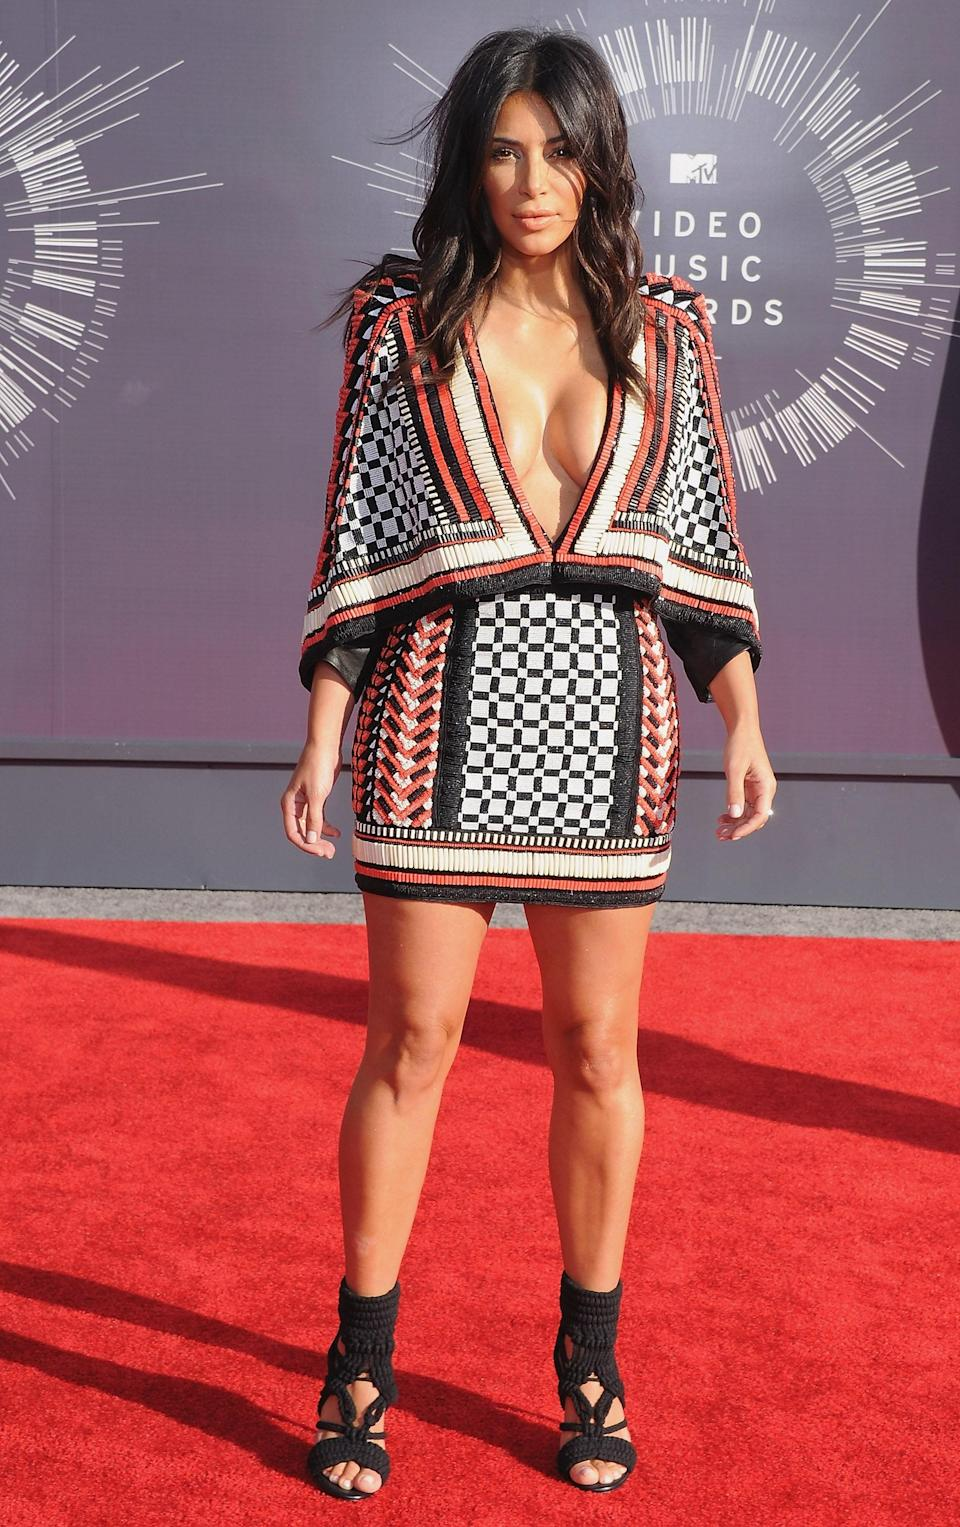 The Kardashian-Jenner women love Balmain. Kim turned more than a few heads in a vibrant cape number from the iconic French fashion house.